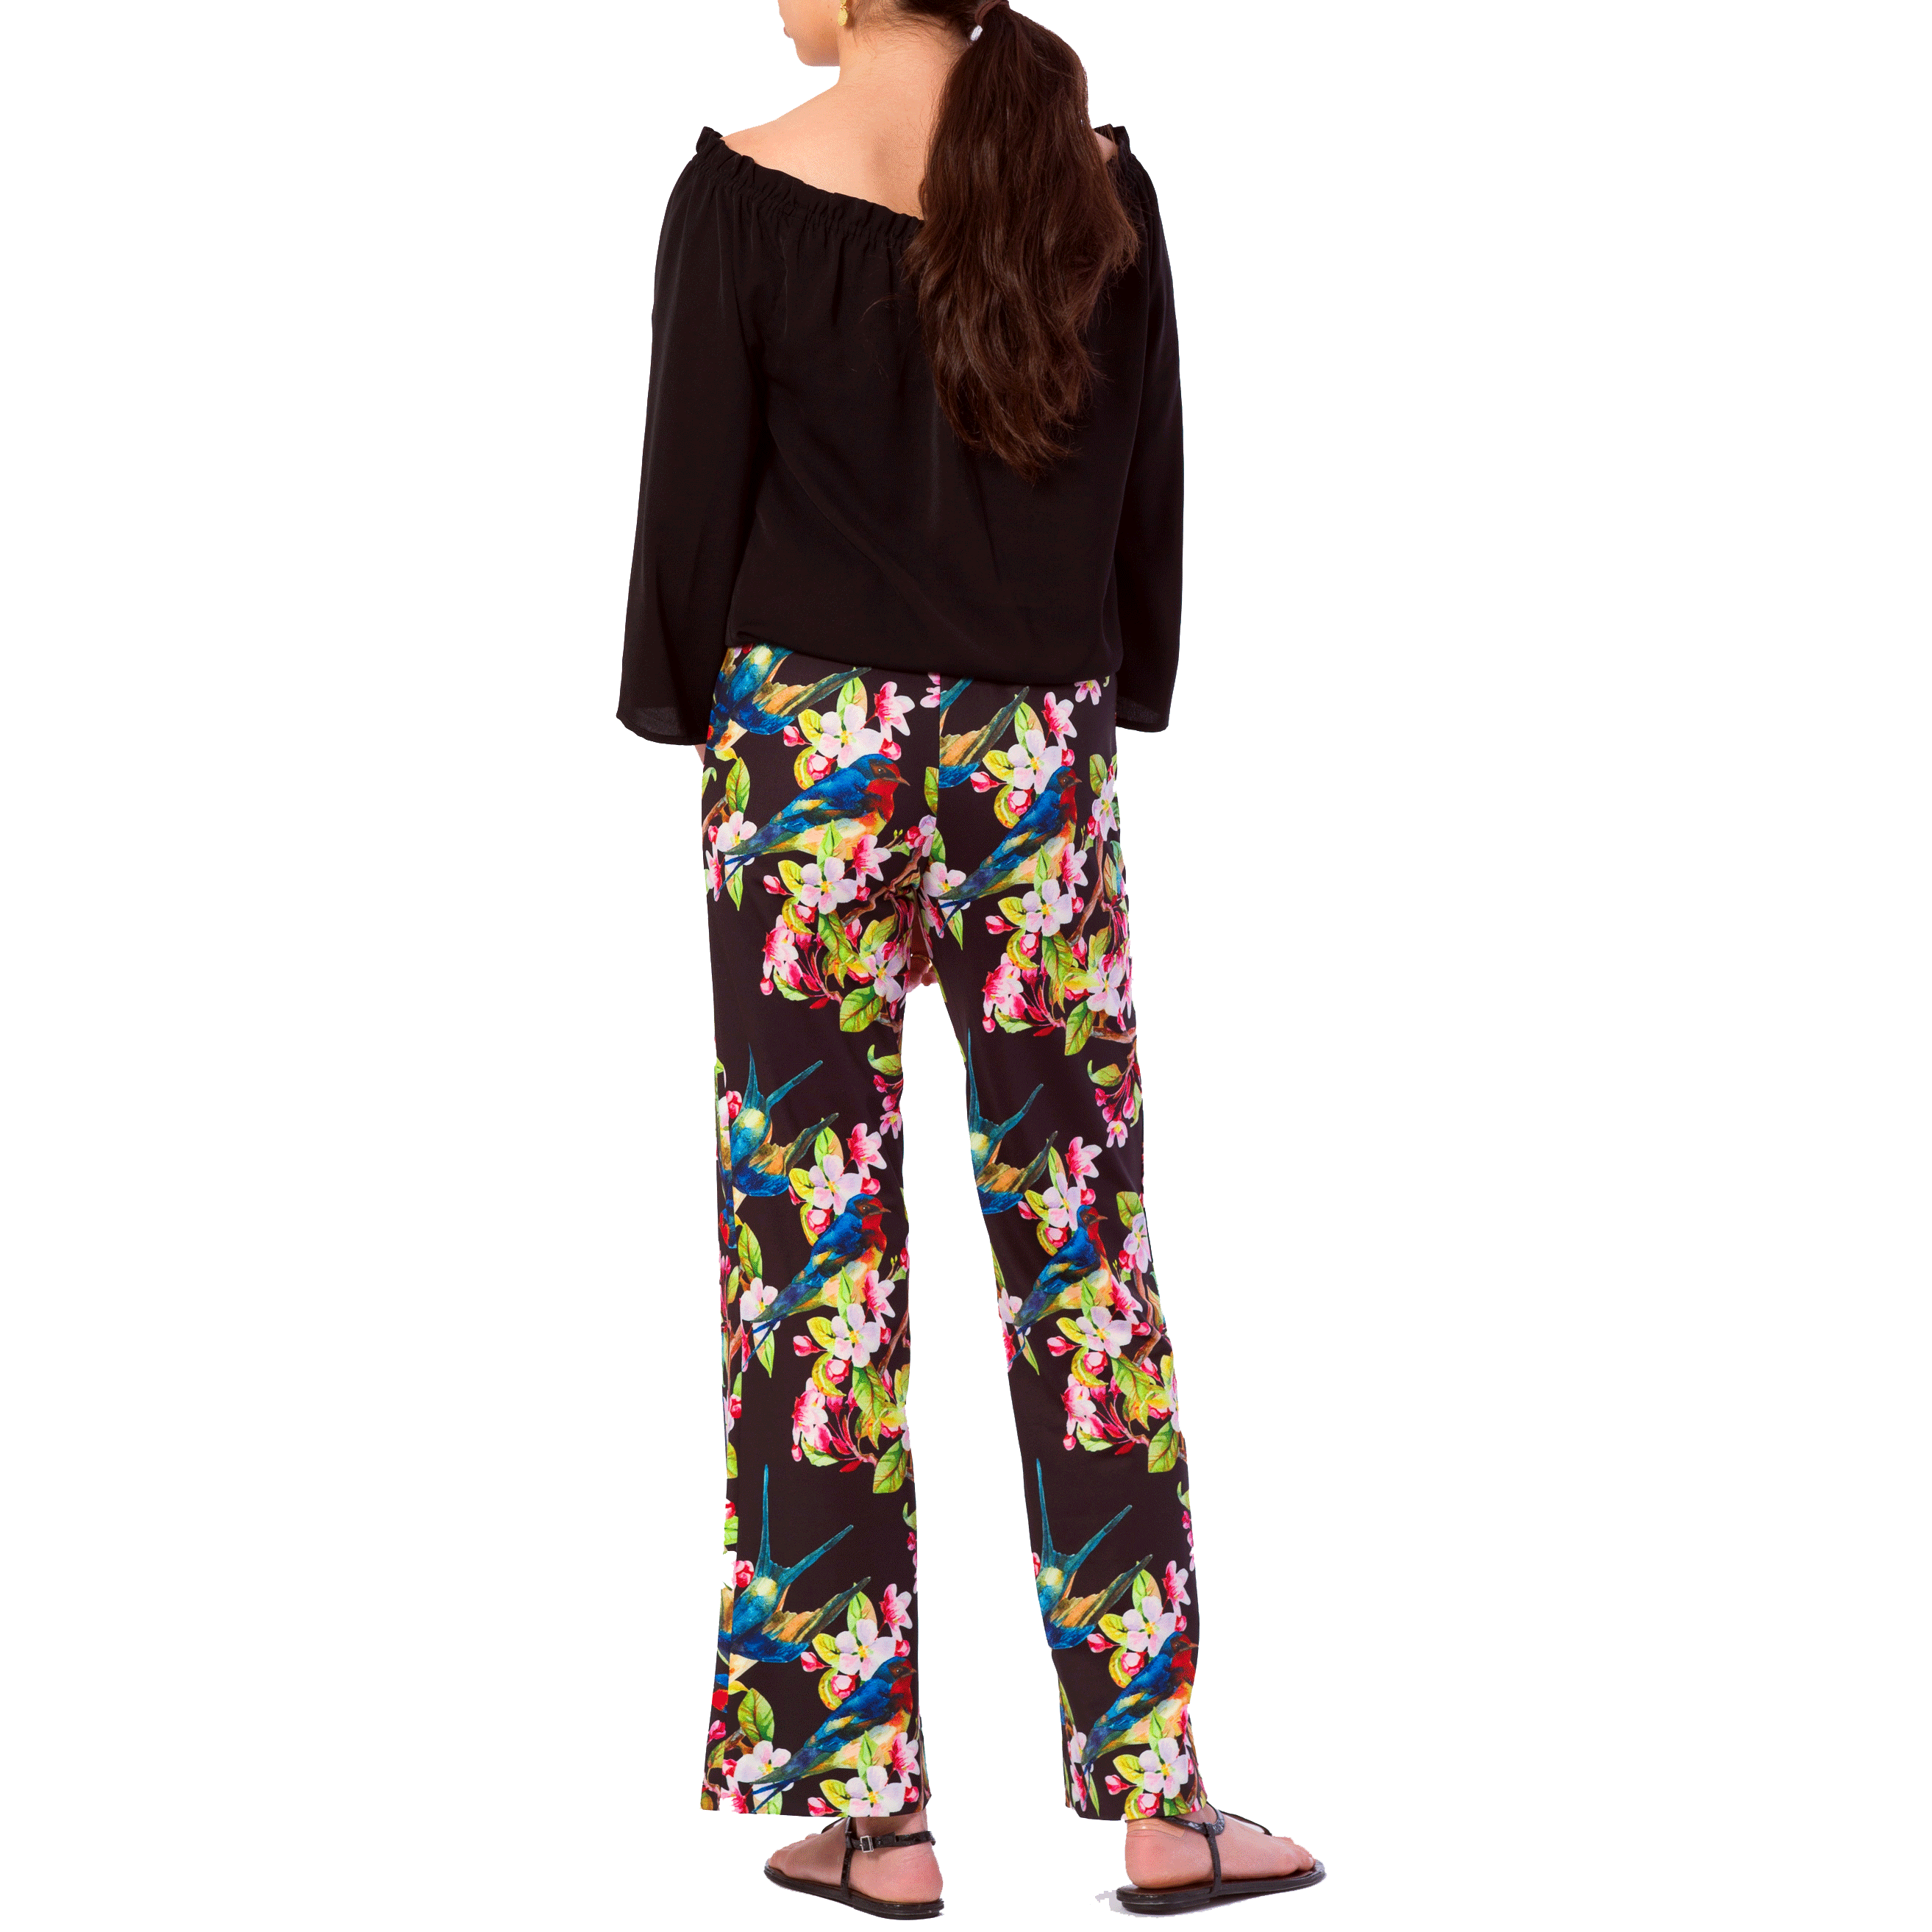 Toby Palazzo Pant in Bird Garden - Elizabeth Ackerman New York